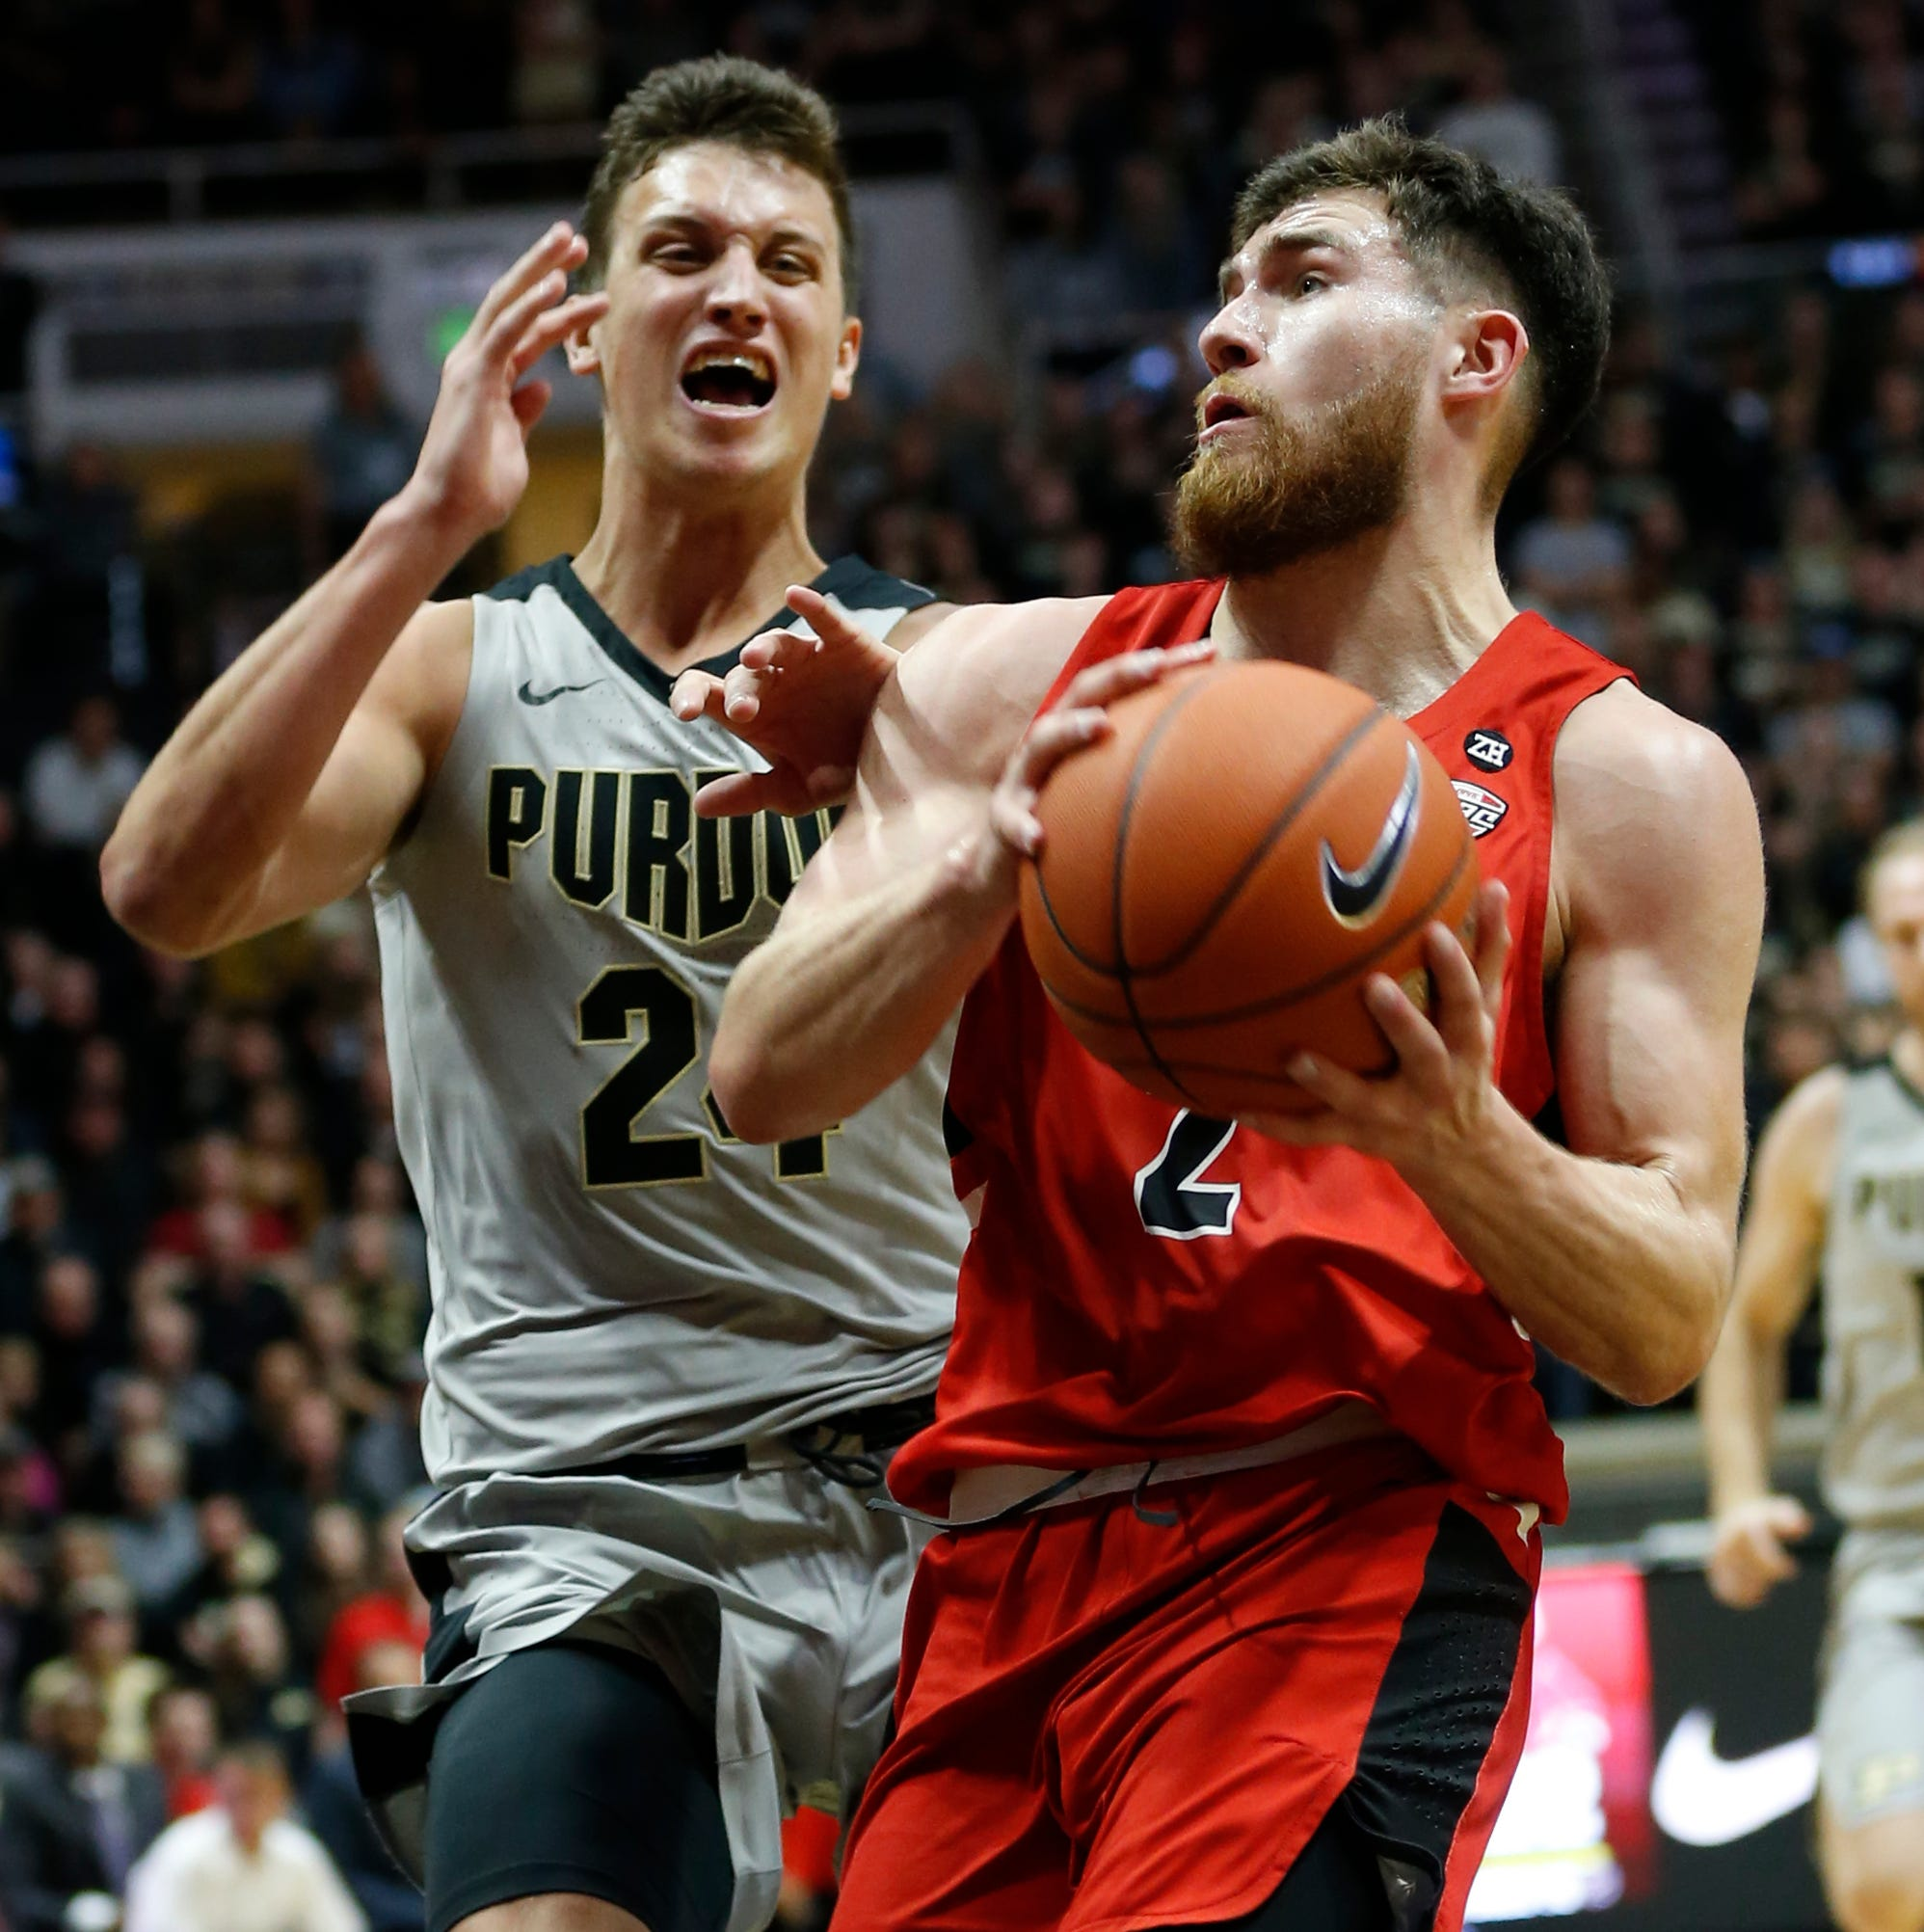 Ball State basketball leaves Purdue feeling disappointed but optimistic about future